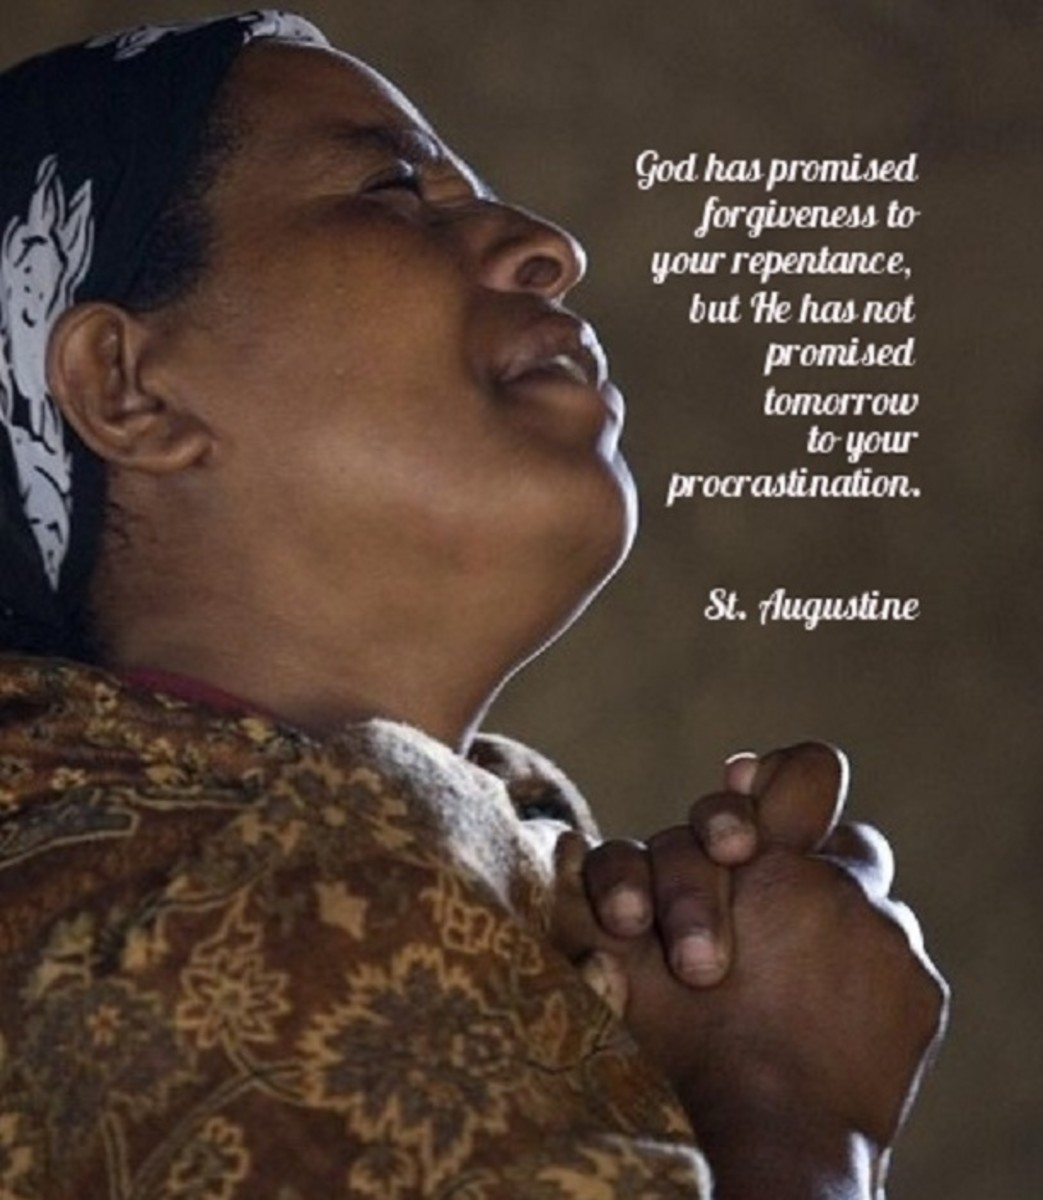 God has not promised tomorrow to your procrastination.